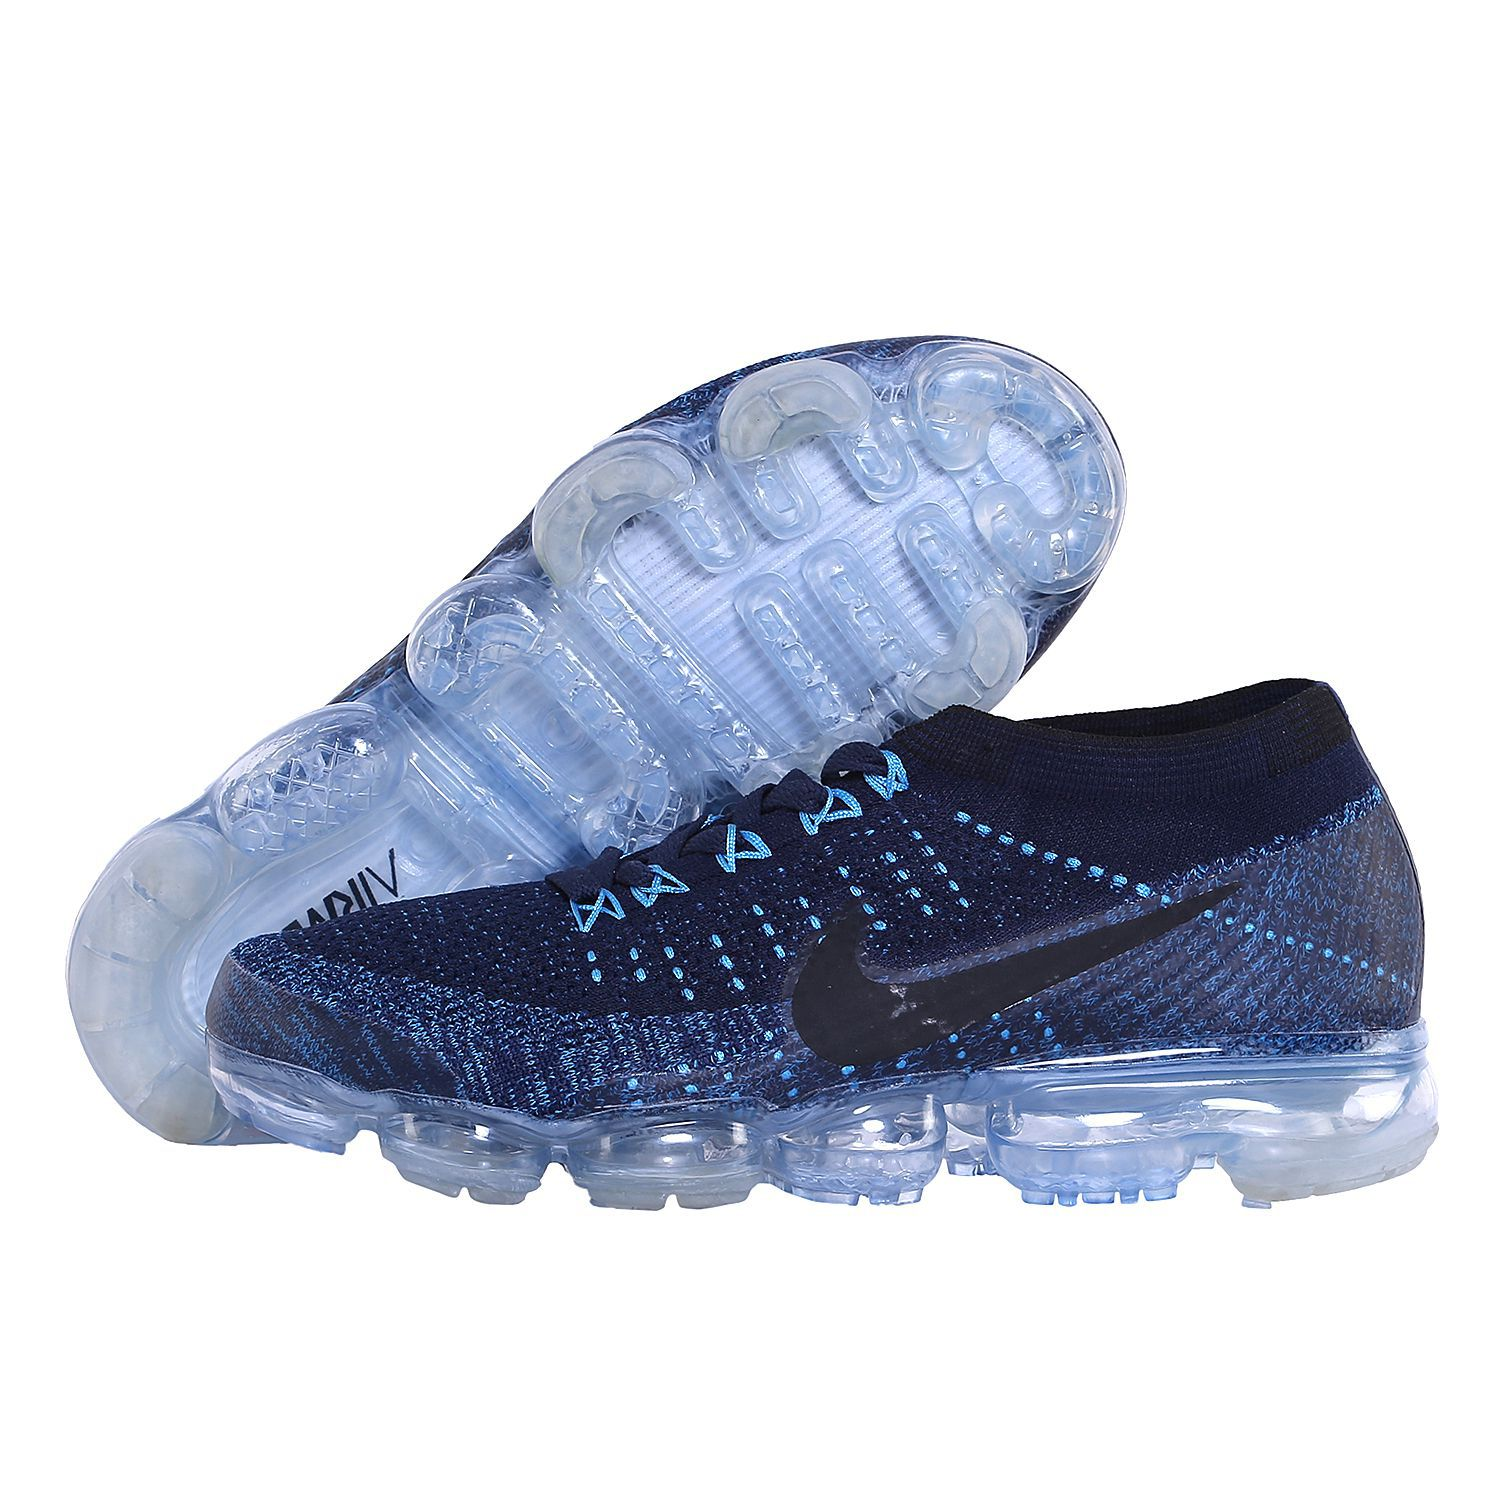 d10063d7a39dd Nike AIR VAPORMAX FLYKNIT Blue Running Shoes - Buy Nike AIR VAPORMAX  FLYKNIT Blue Running Shoes Online at Best Prices in India on Snapdeal